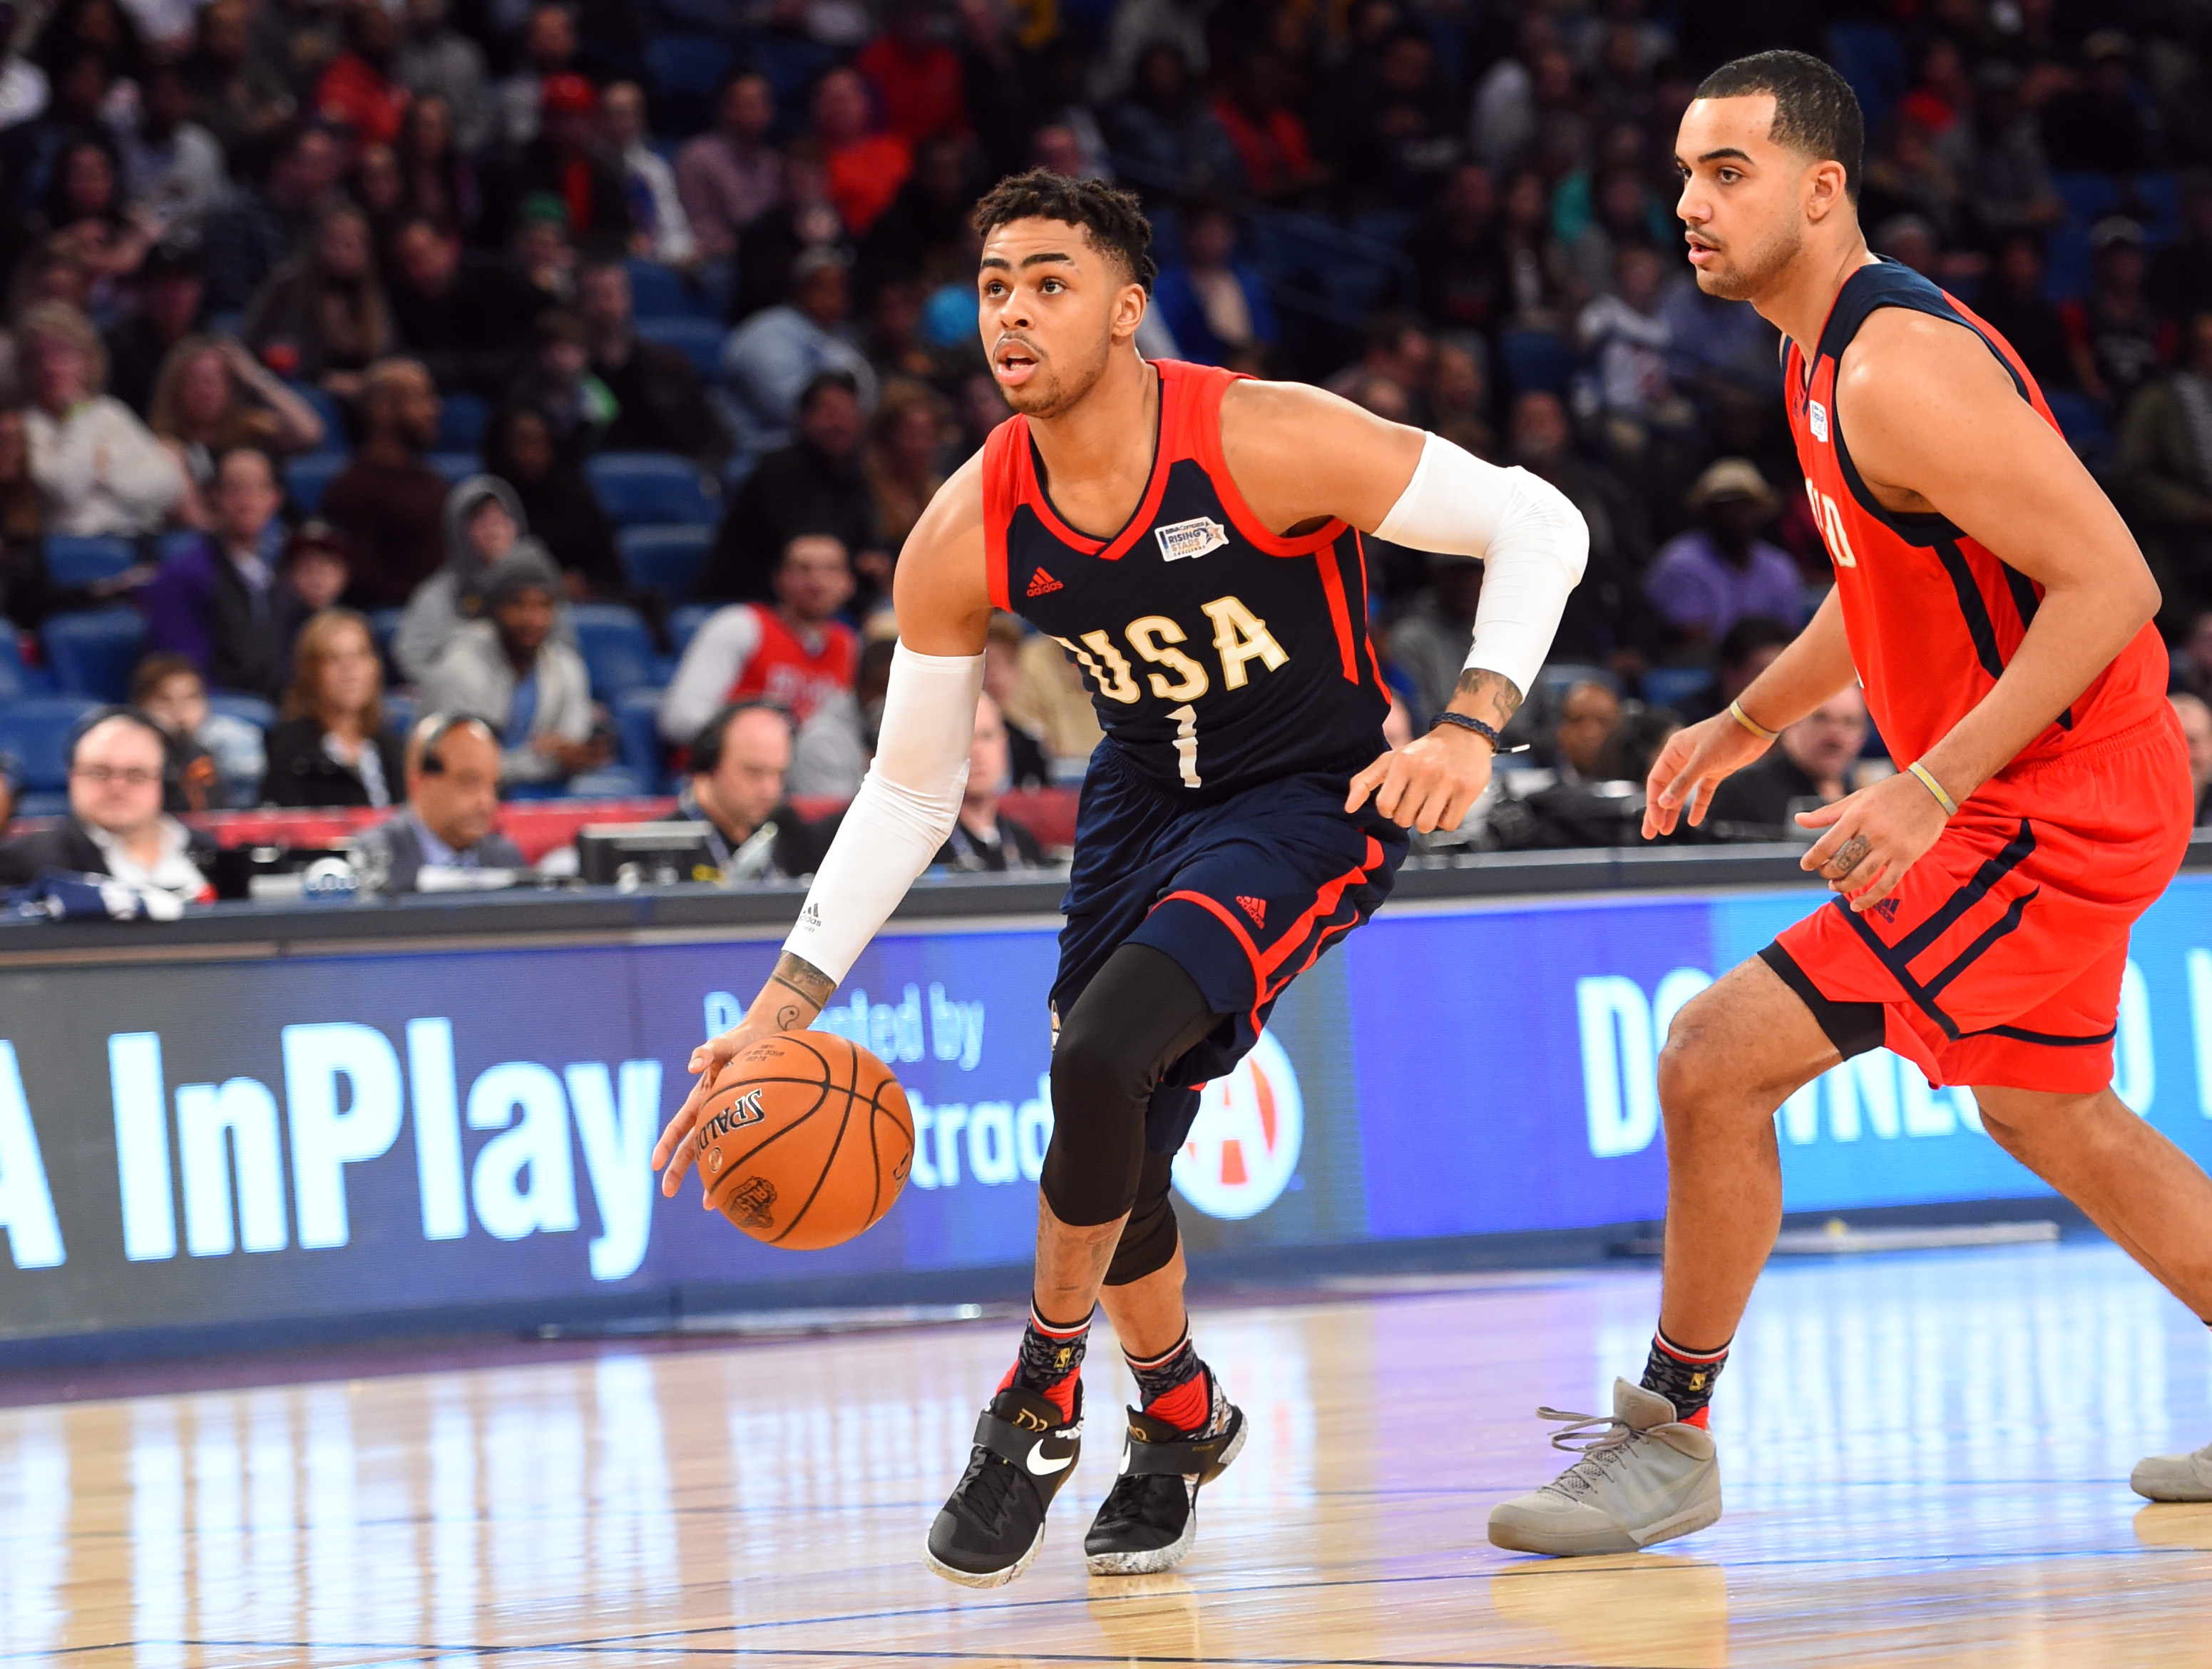 9882558-nba-rising-stars-challenge-u.s.-vs-world